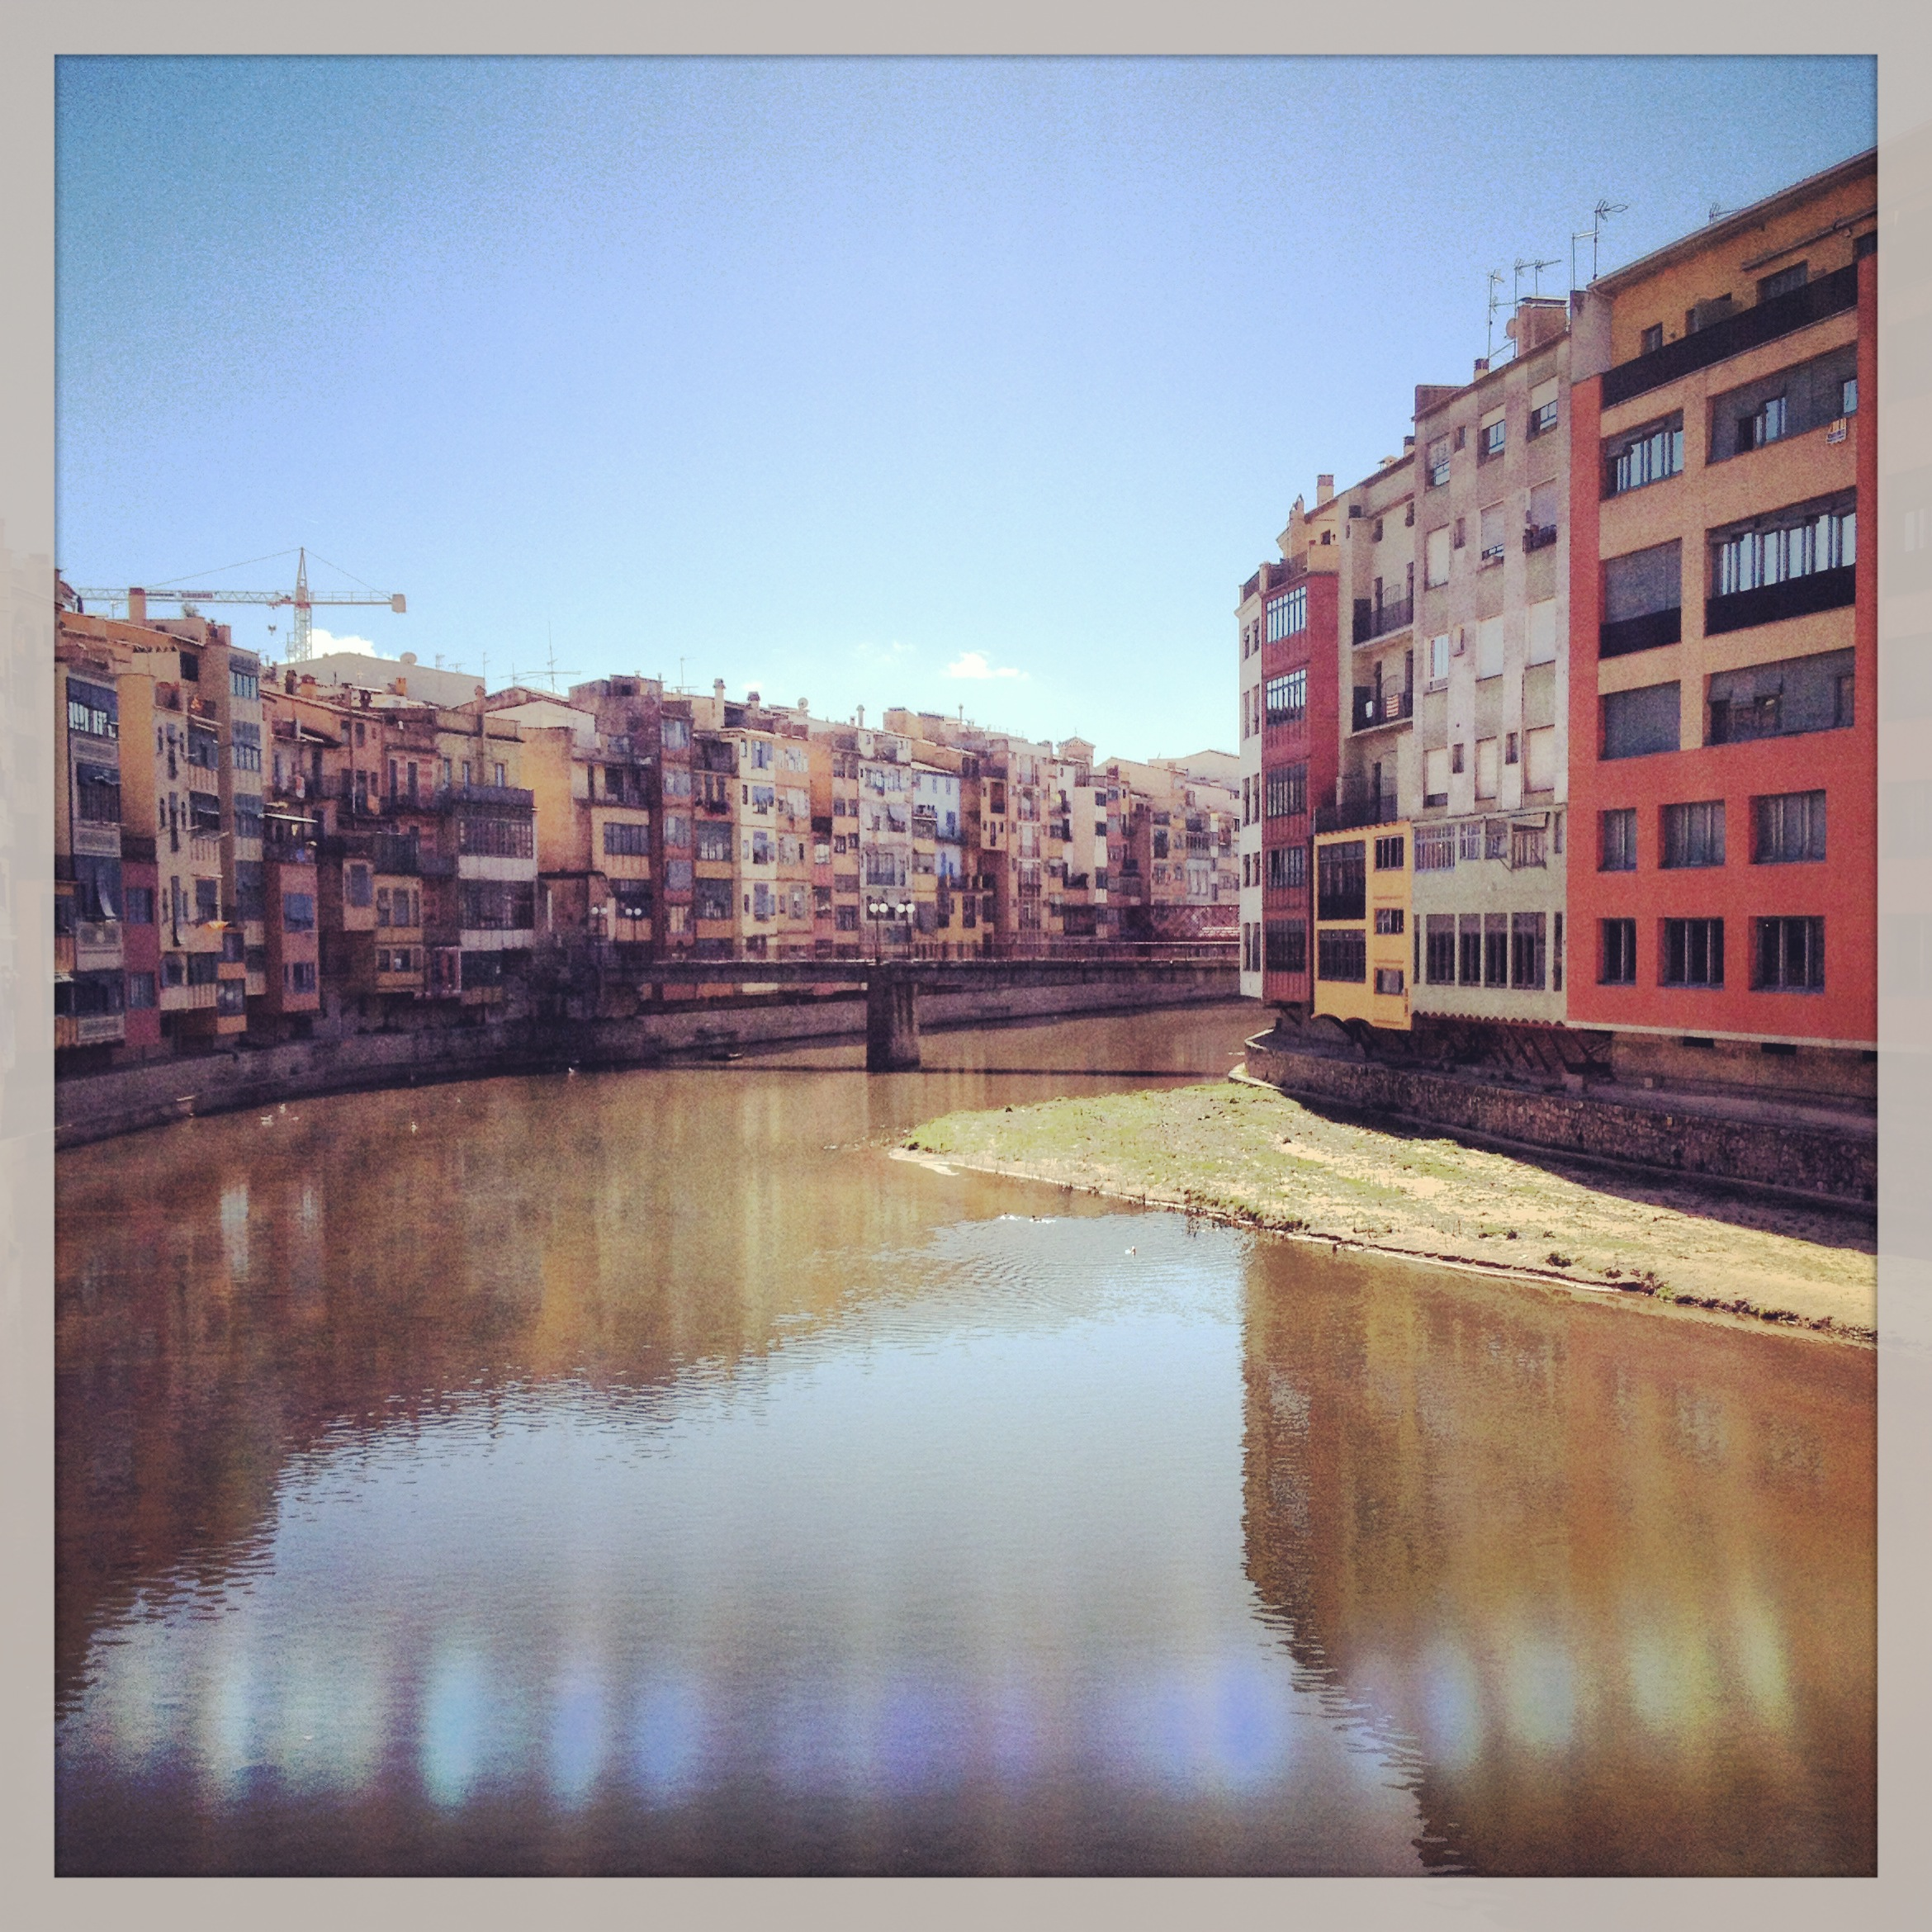 my trip to spain essay How to write a what i did on my vacation essay vacation essays tell a story share flipboard email print an emotional trip summer job essay topic ideas.